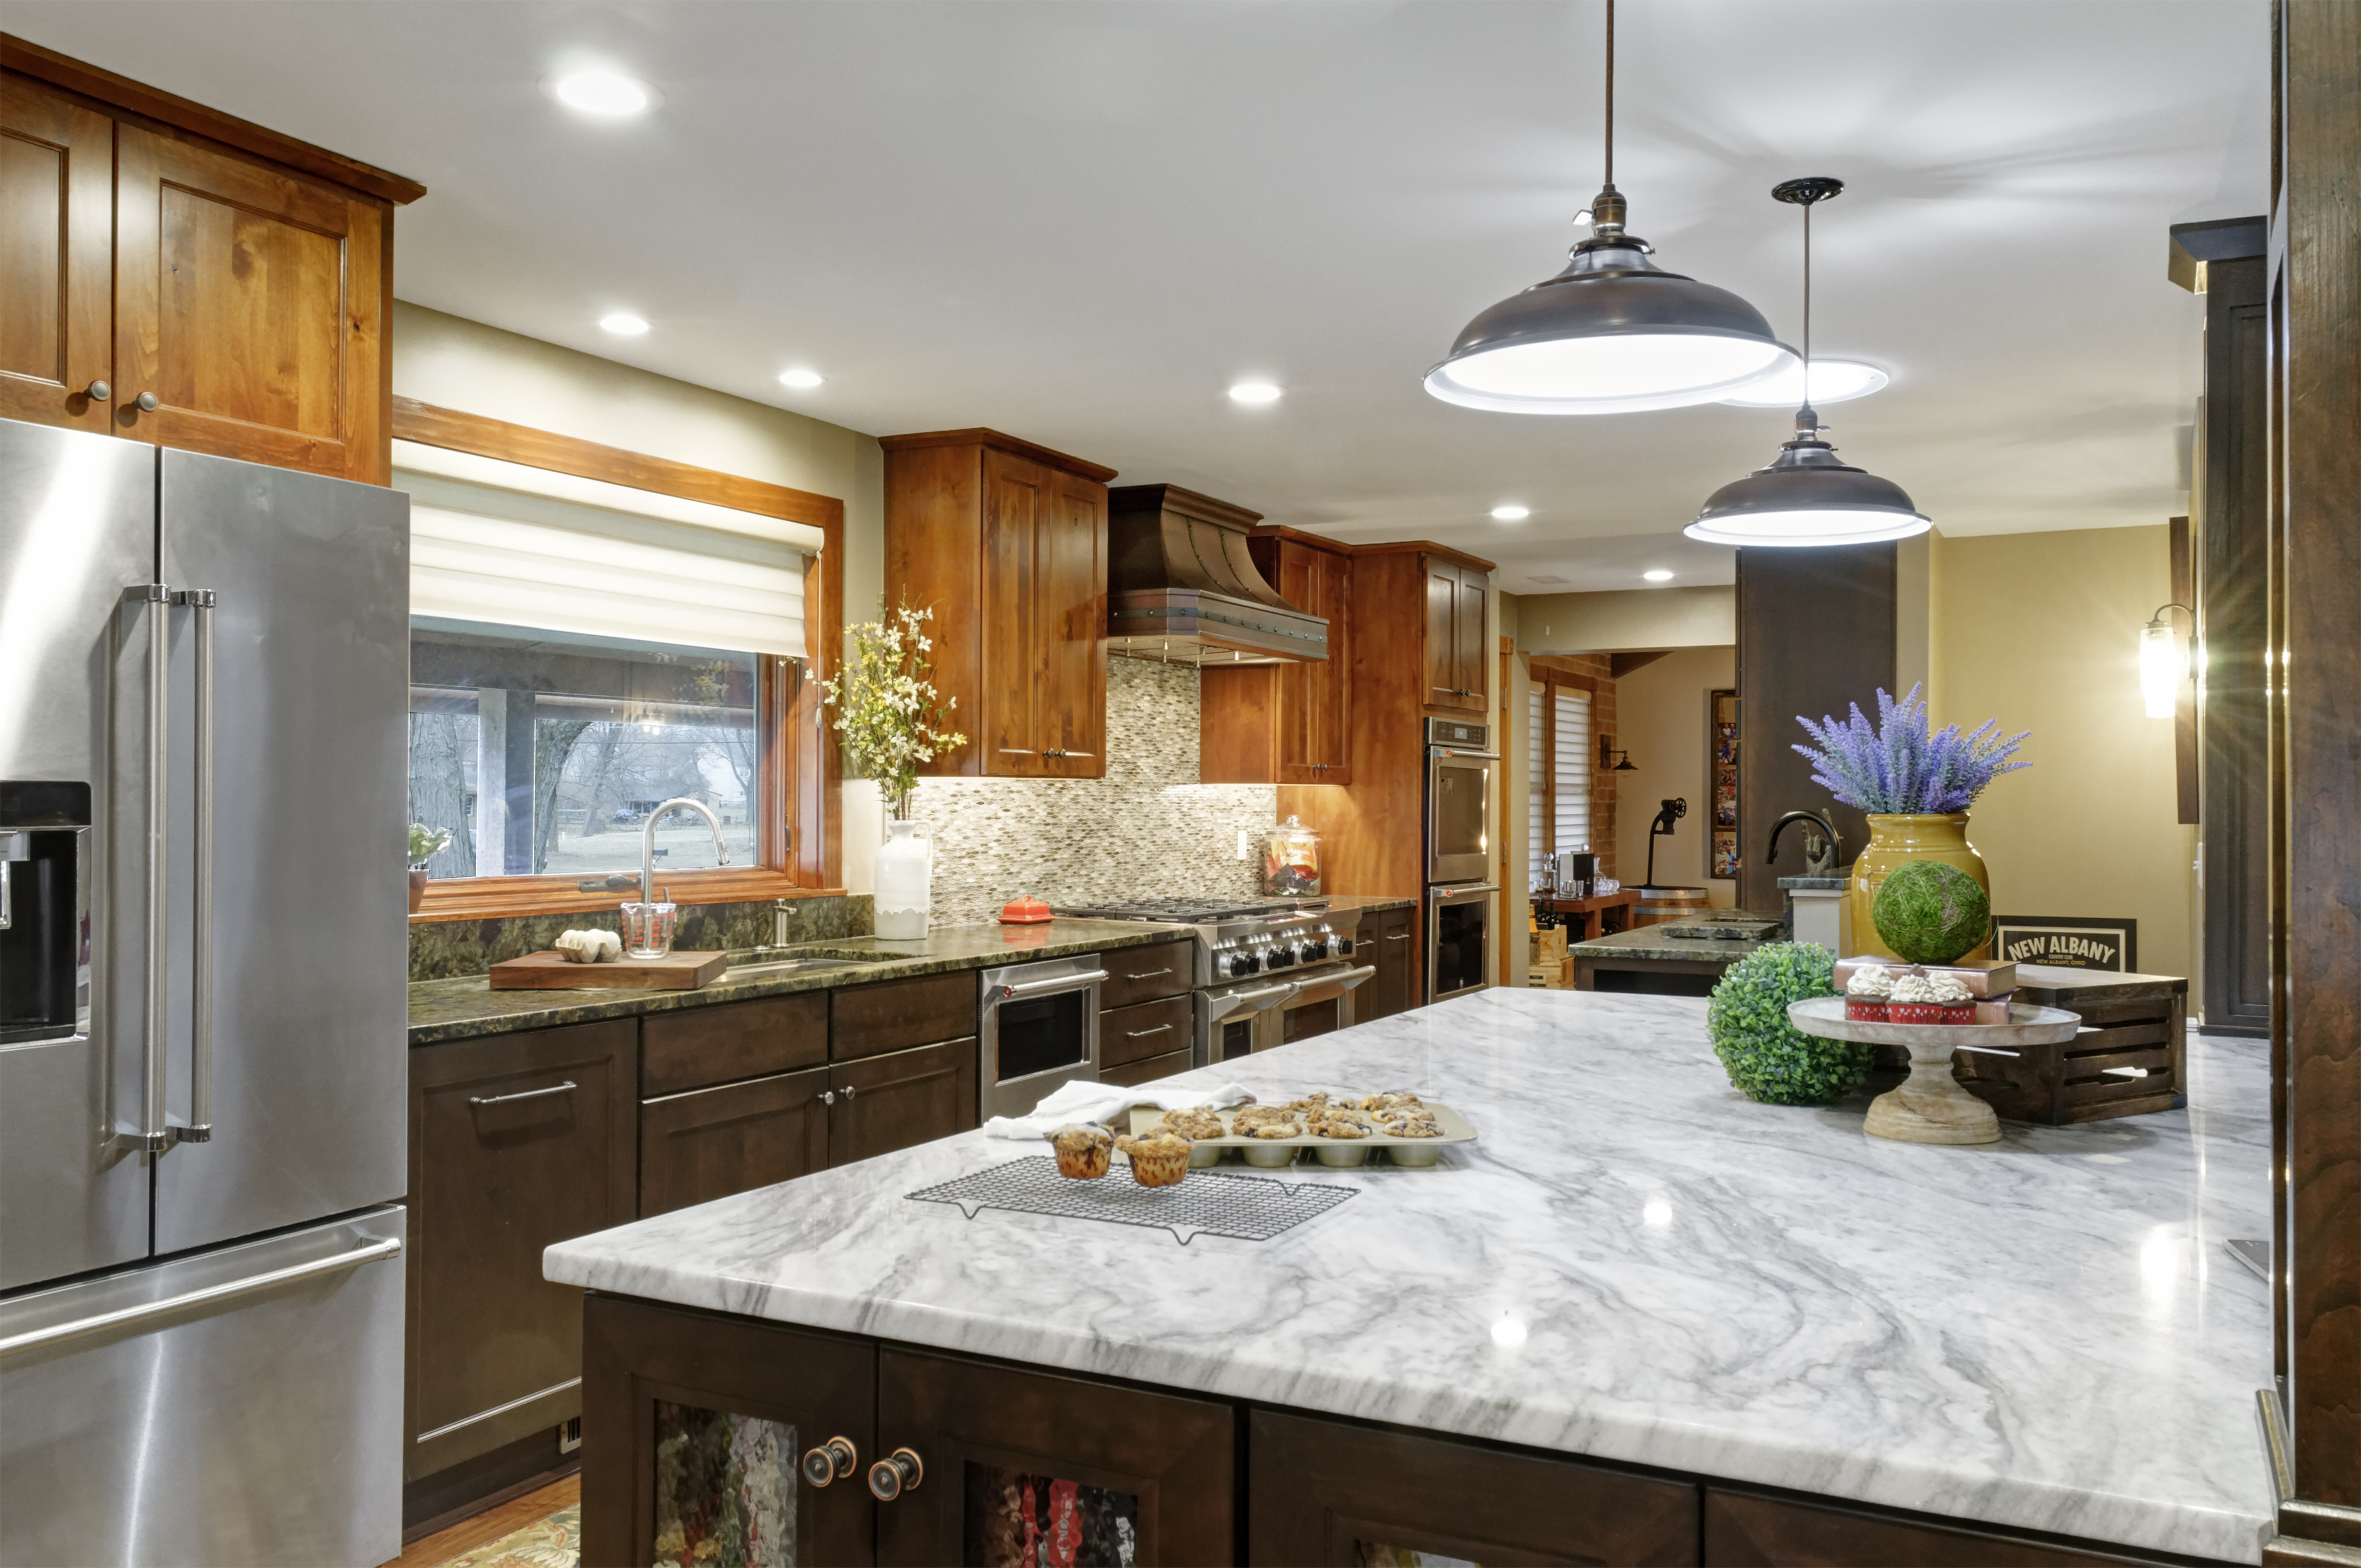 Kitchen Remodeling In Columbus: 7 Beautiful Kitchen Renovation Design Ideas - Dave Fox